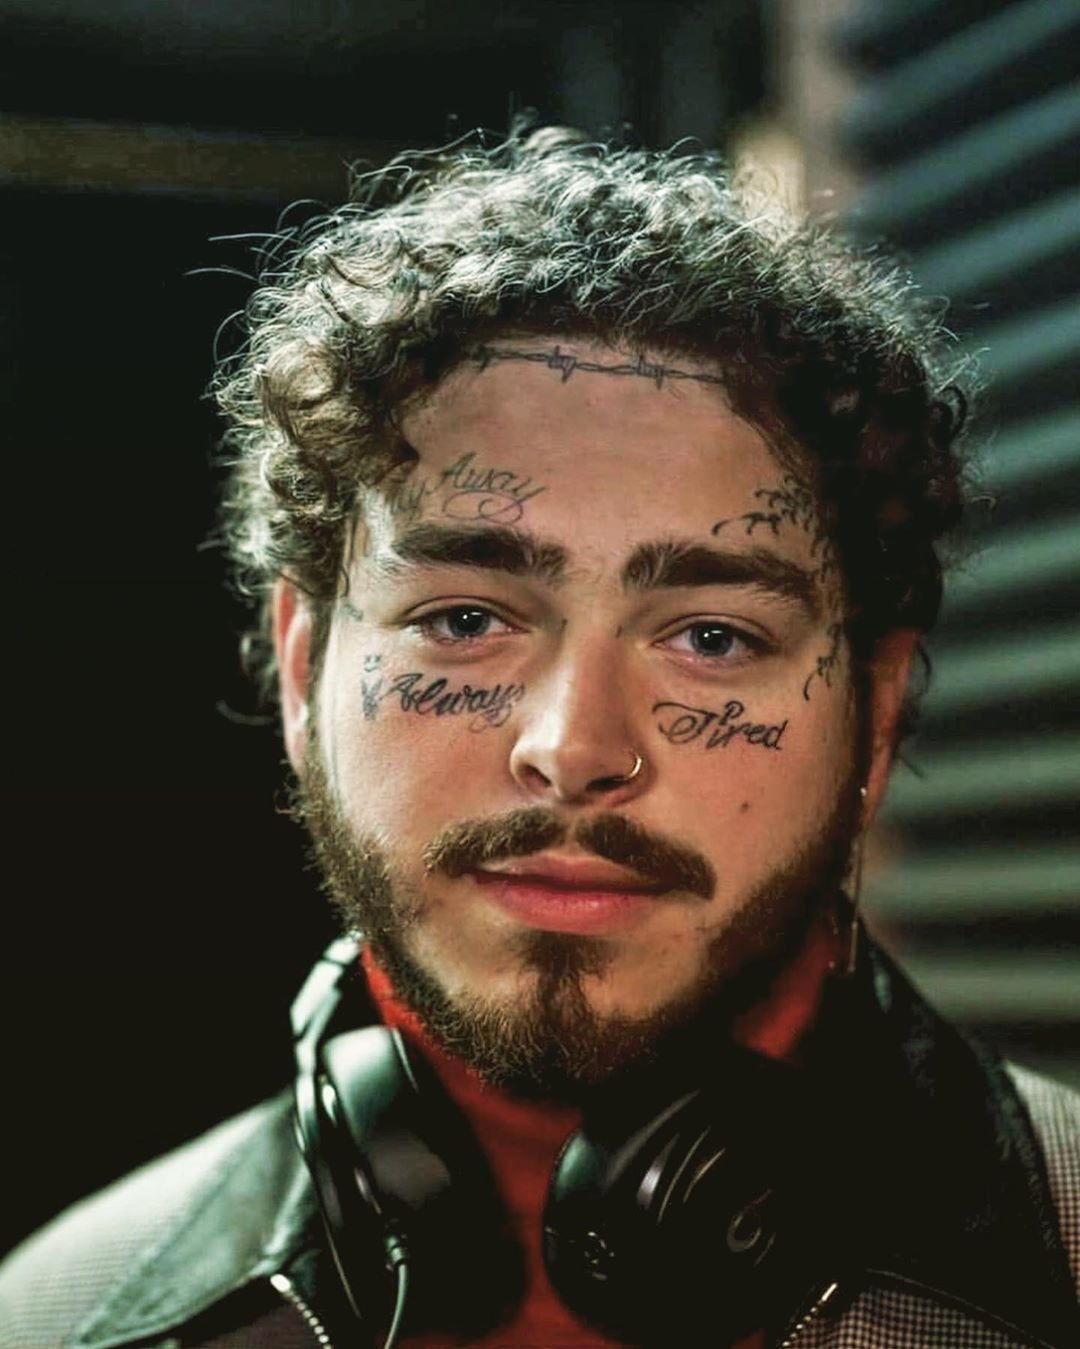 Pin By Alexis Murphy On My Artists In 2020 Post Malone Post